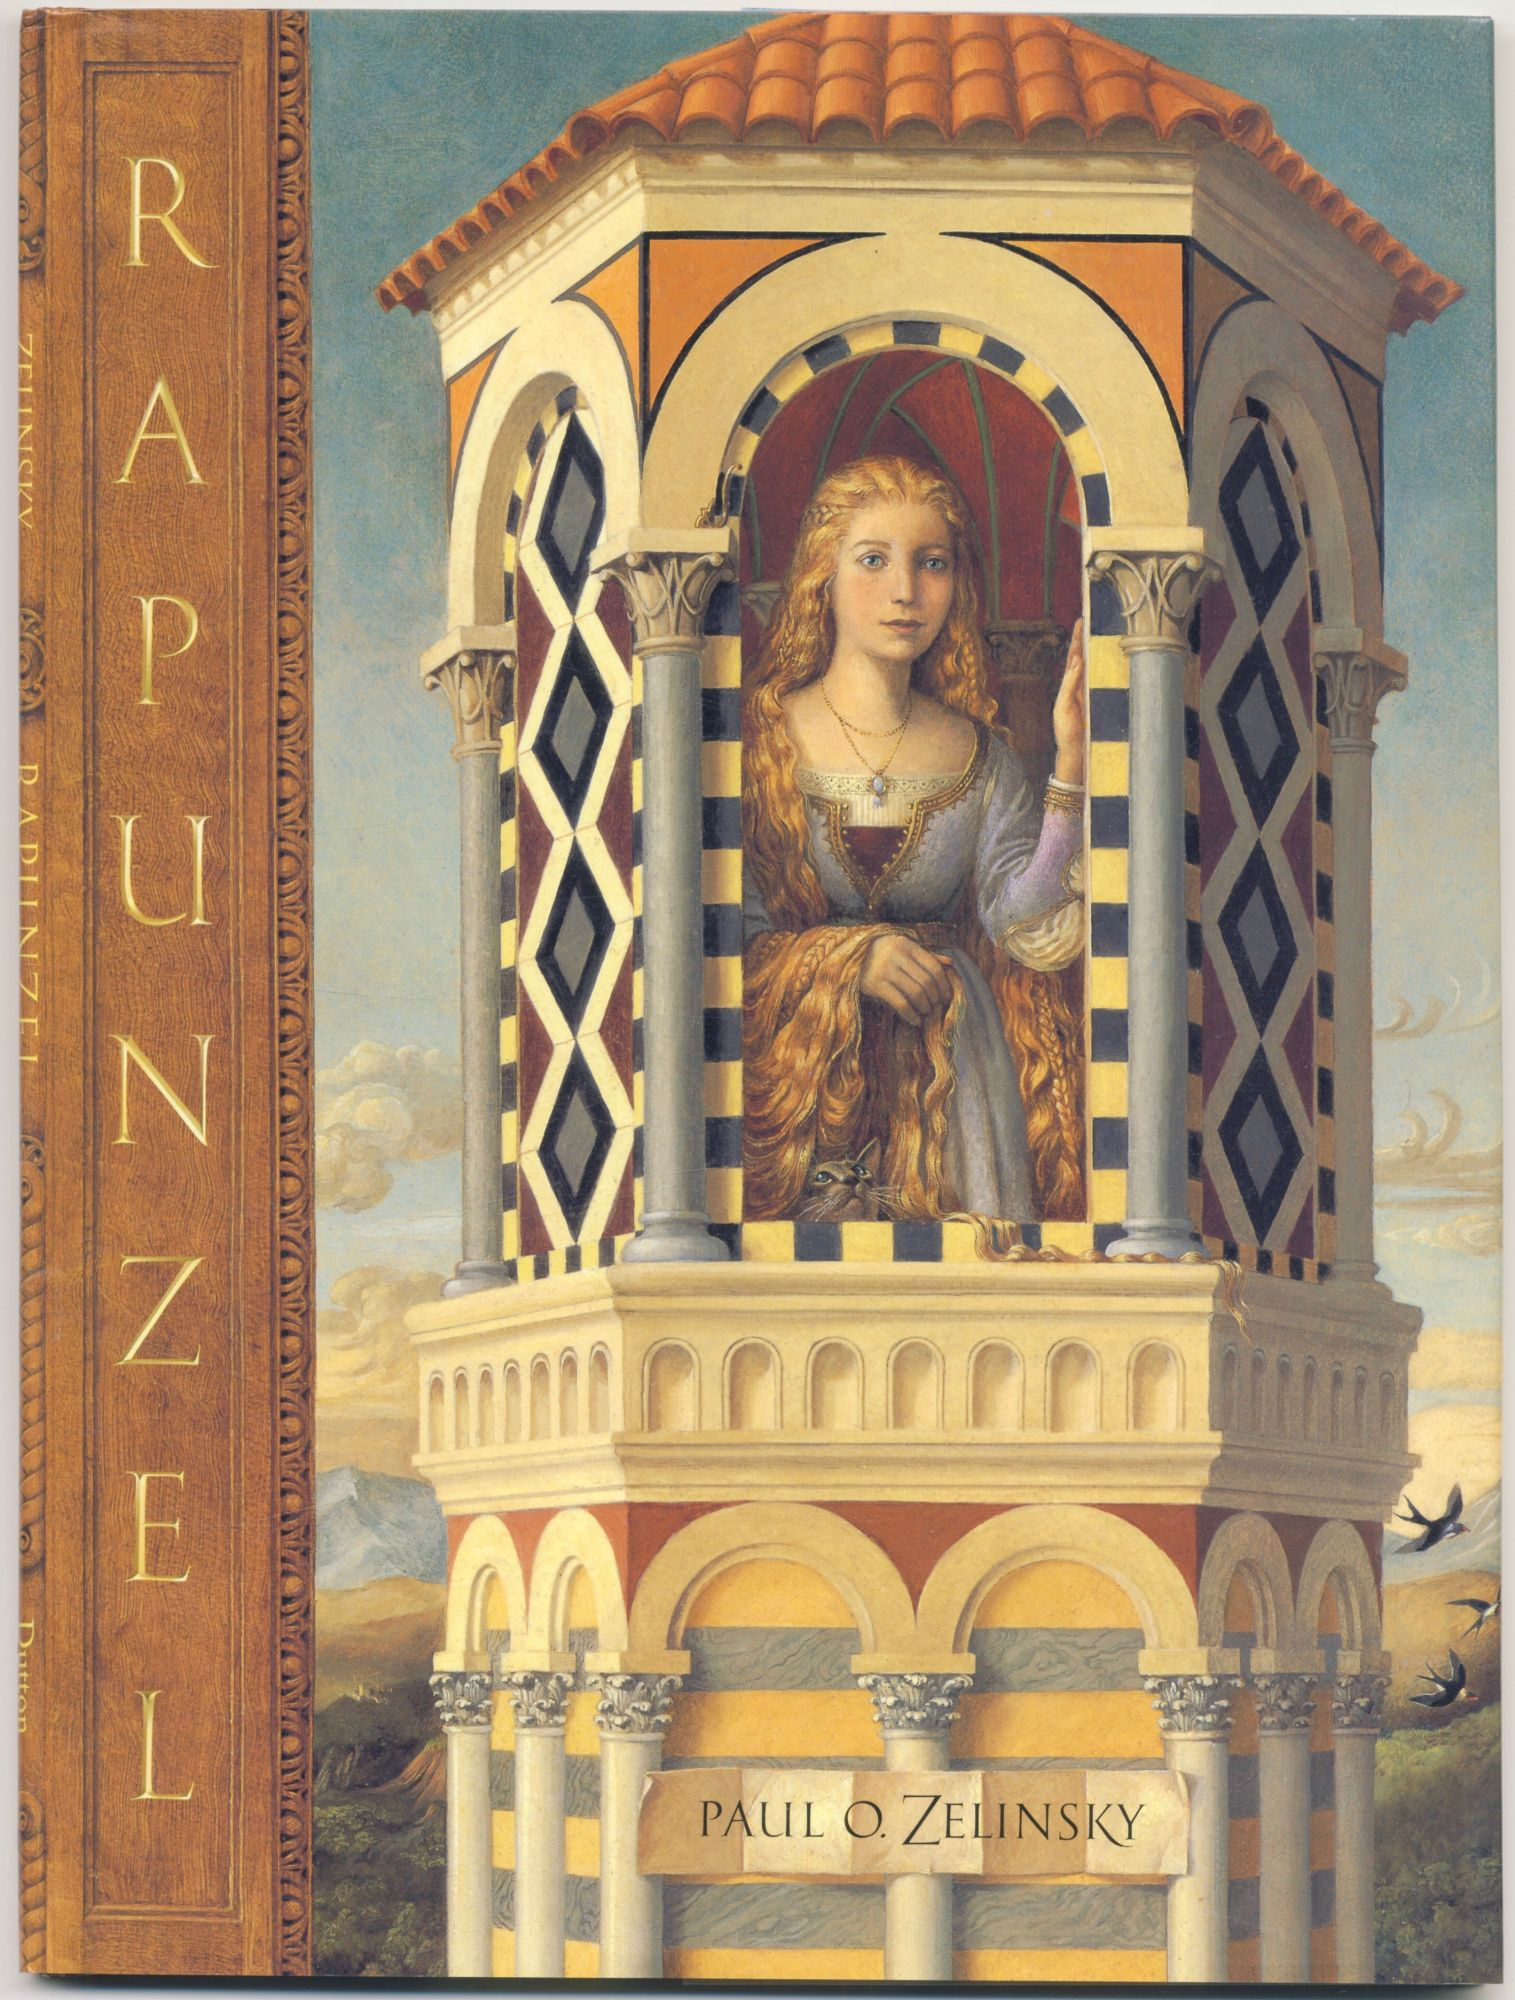 Rapunzel - 1st Edition/1st Printing. Paul O. Zelinsky.